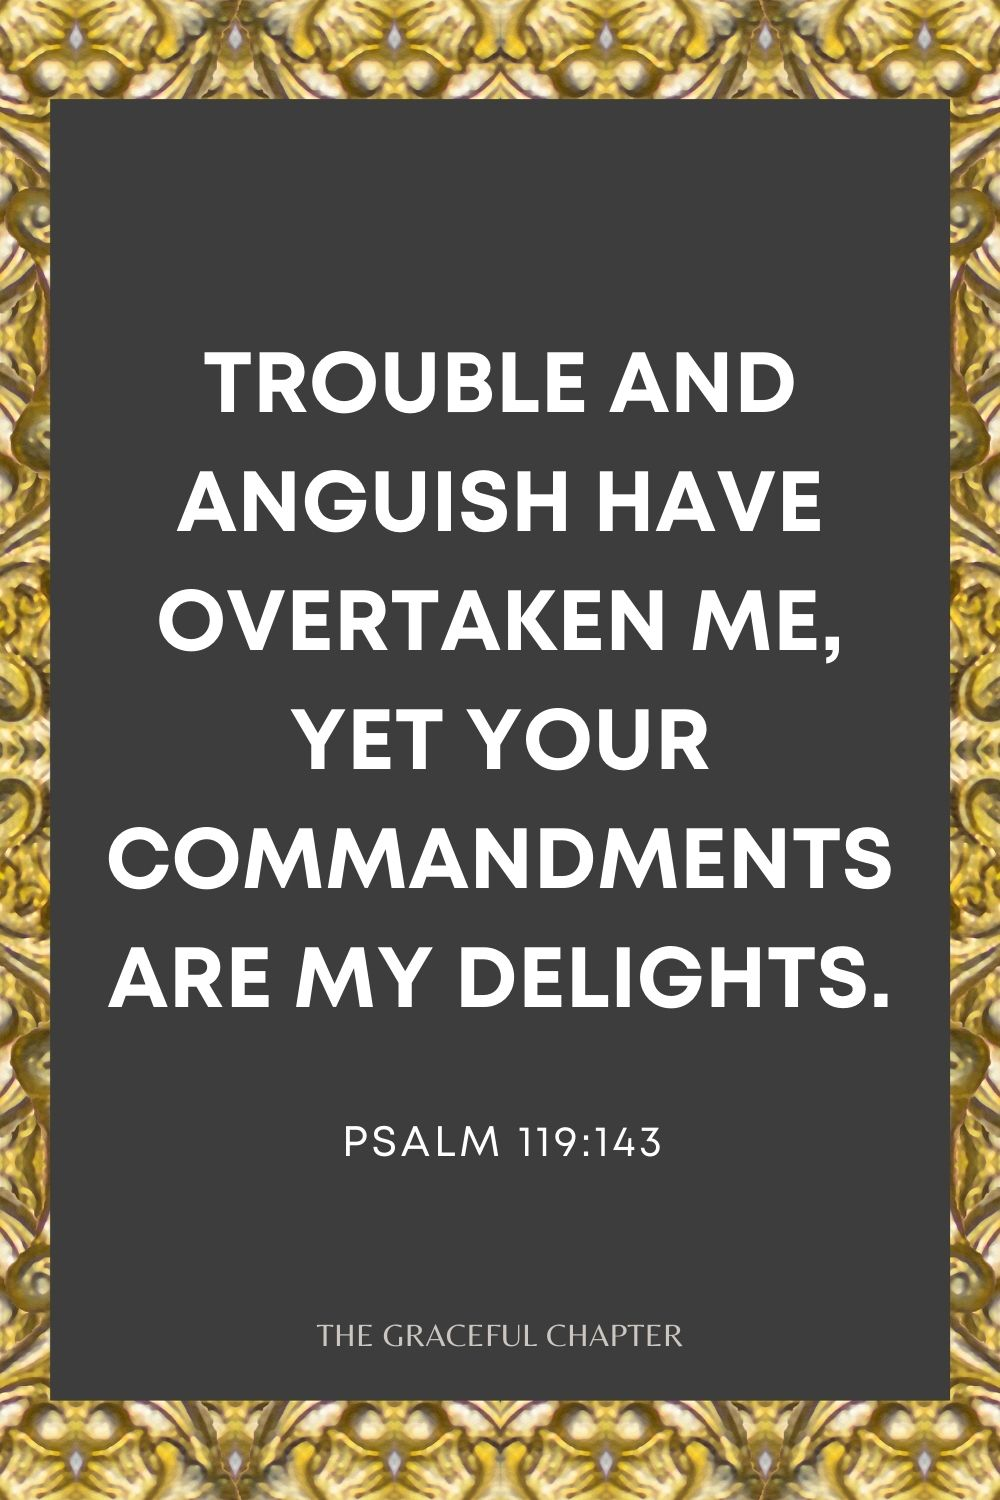 Trouble and anguish have overtaken me, Yet Your commandments are my delights. Psalm 119:143